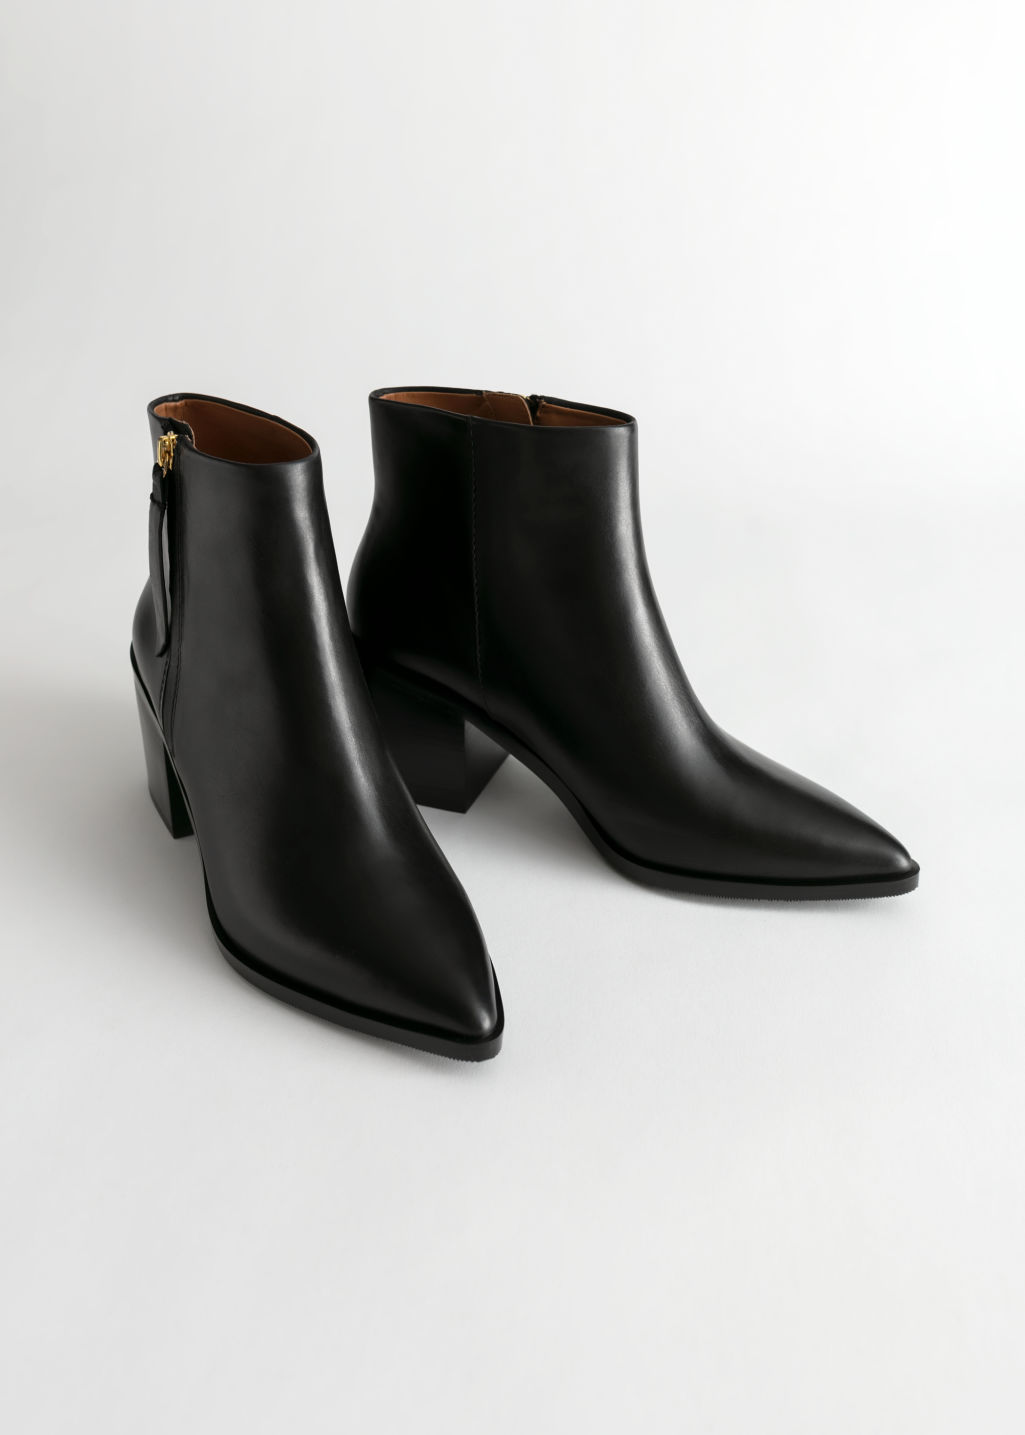 Pointed Ankle Boots - Black - Ankleboots -   Other Stories 1acd3995c